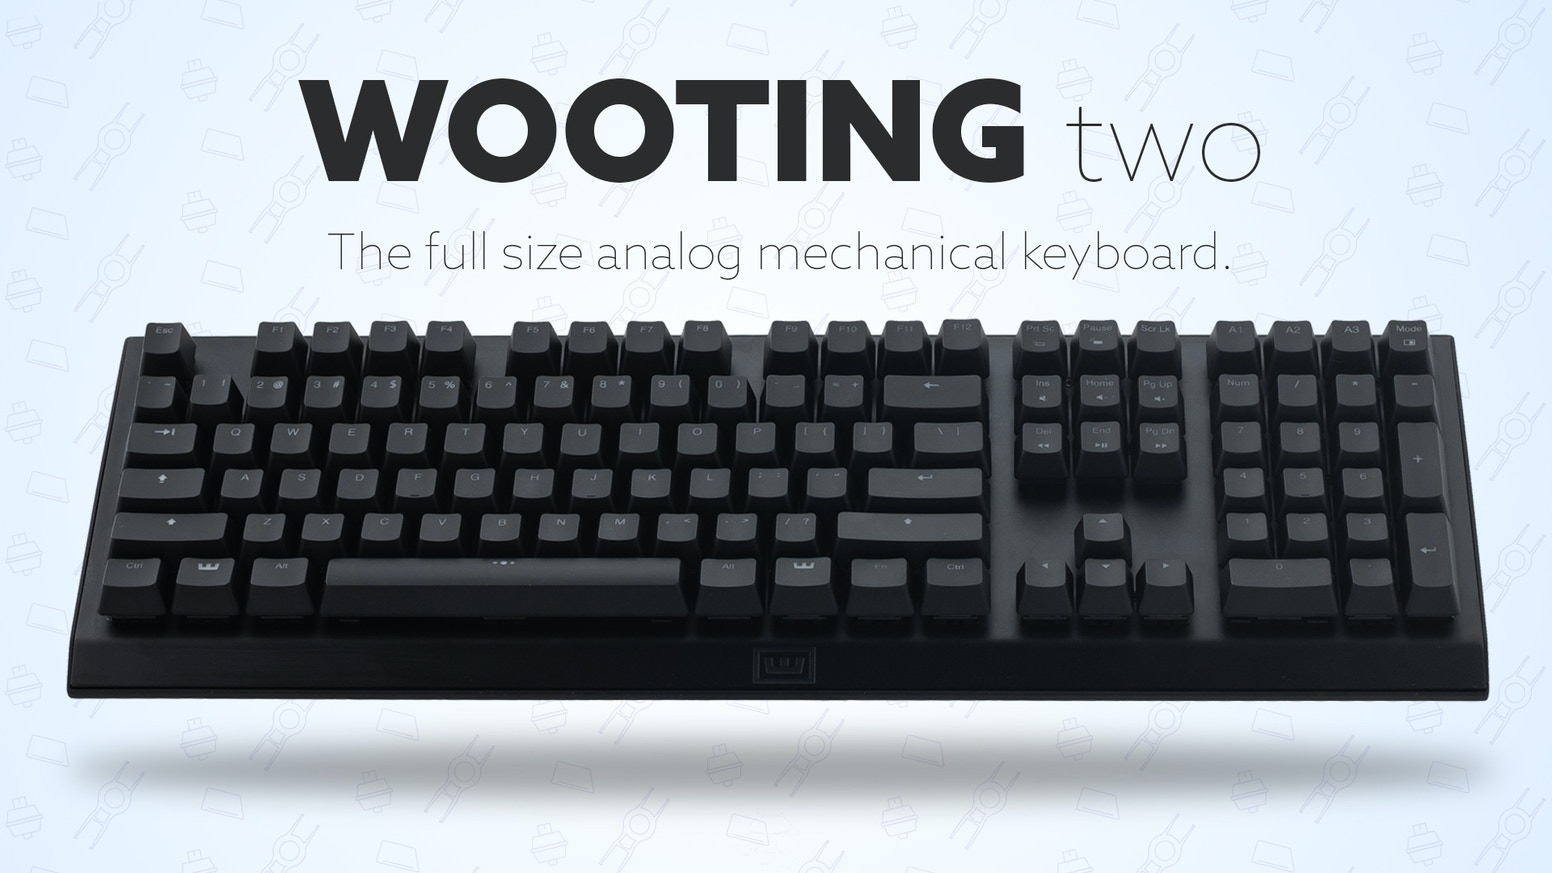 Wooting two - The full-size analog mechanical keyboard by